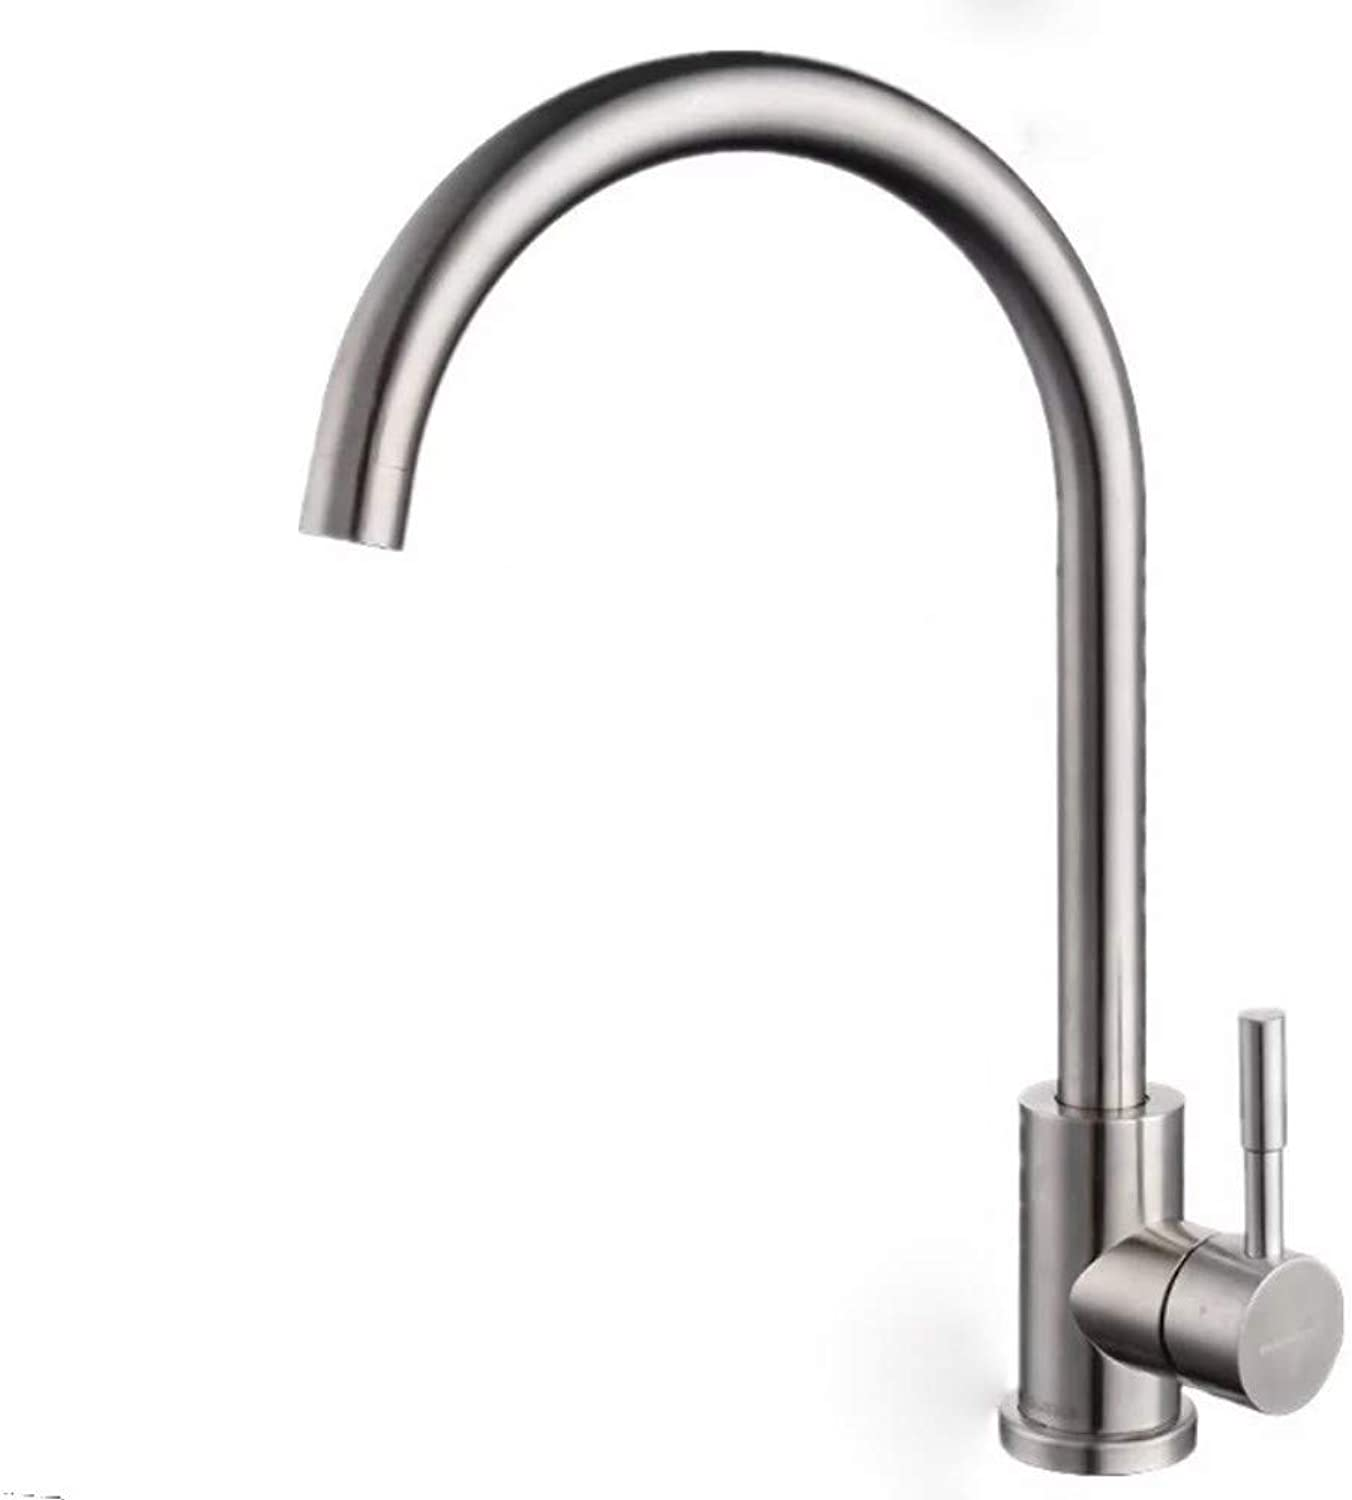 Stainless Steel Kitchen Hot and Cold Faucet Sink Sink Brushed redating Faucet